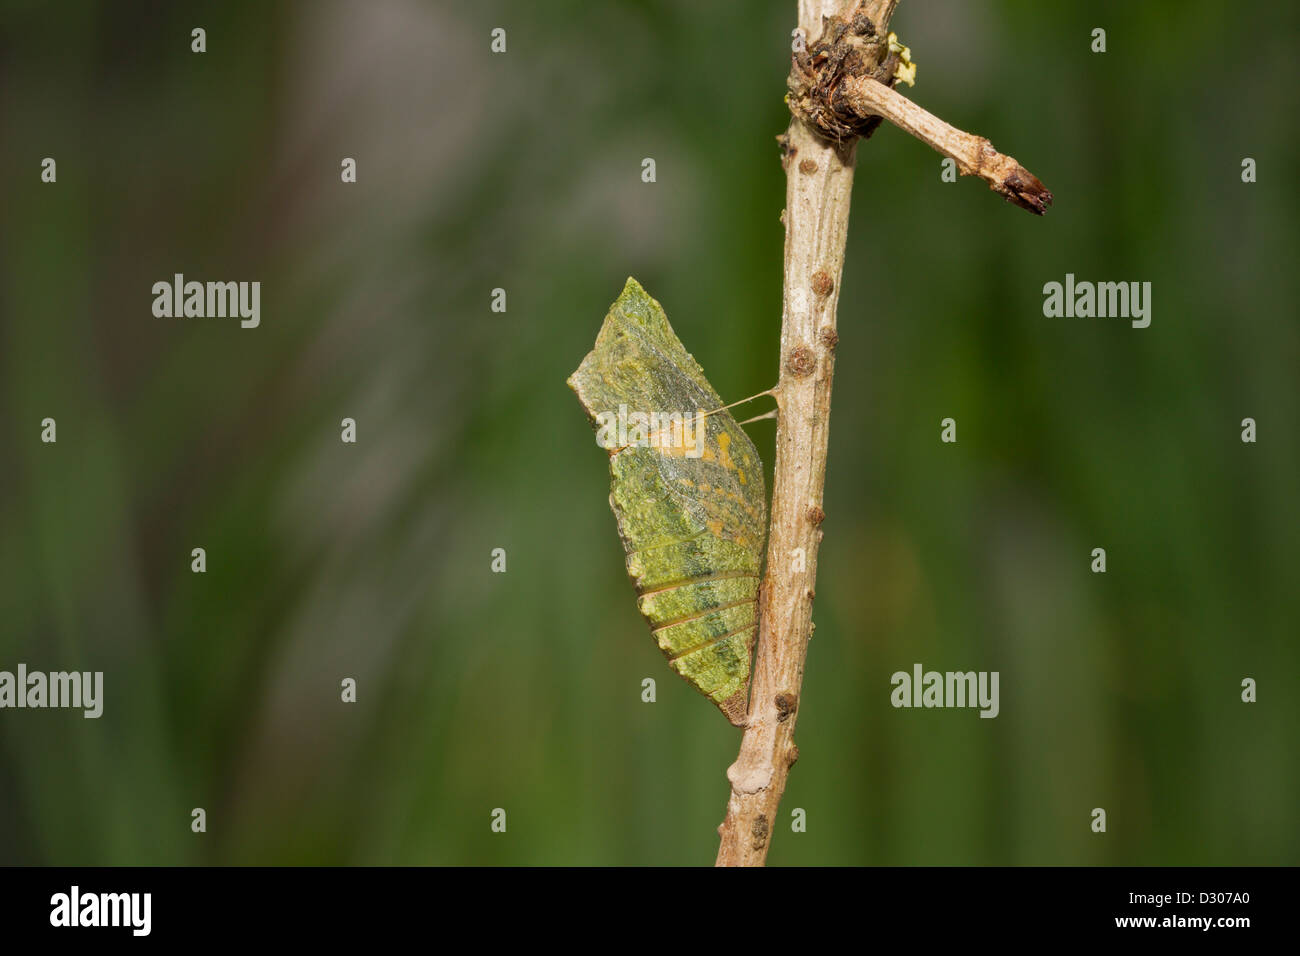 Schwalbenschwanz Puppe, Papilio machaon, Old World swallowtail cocoon - Stock Image